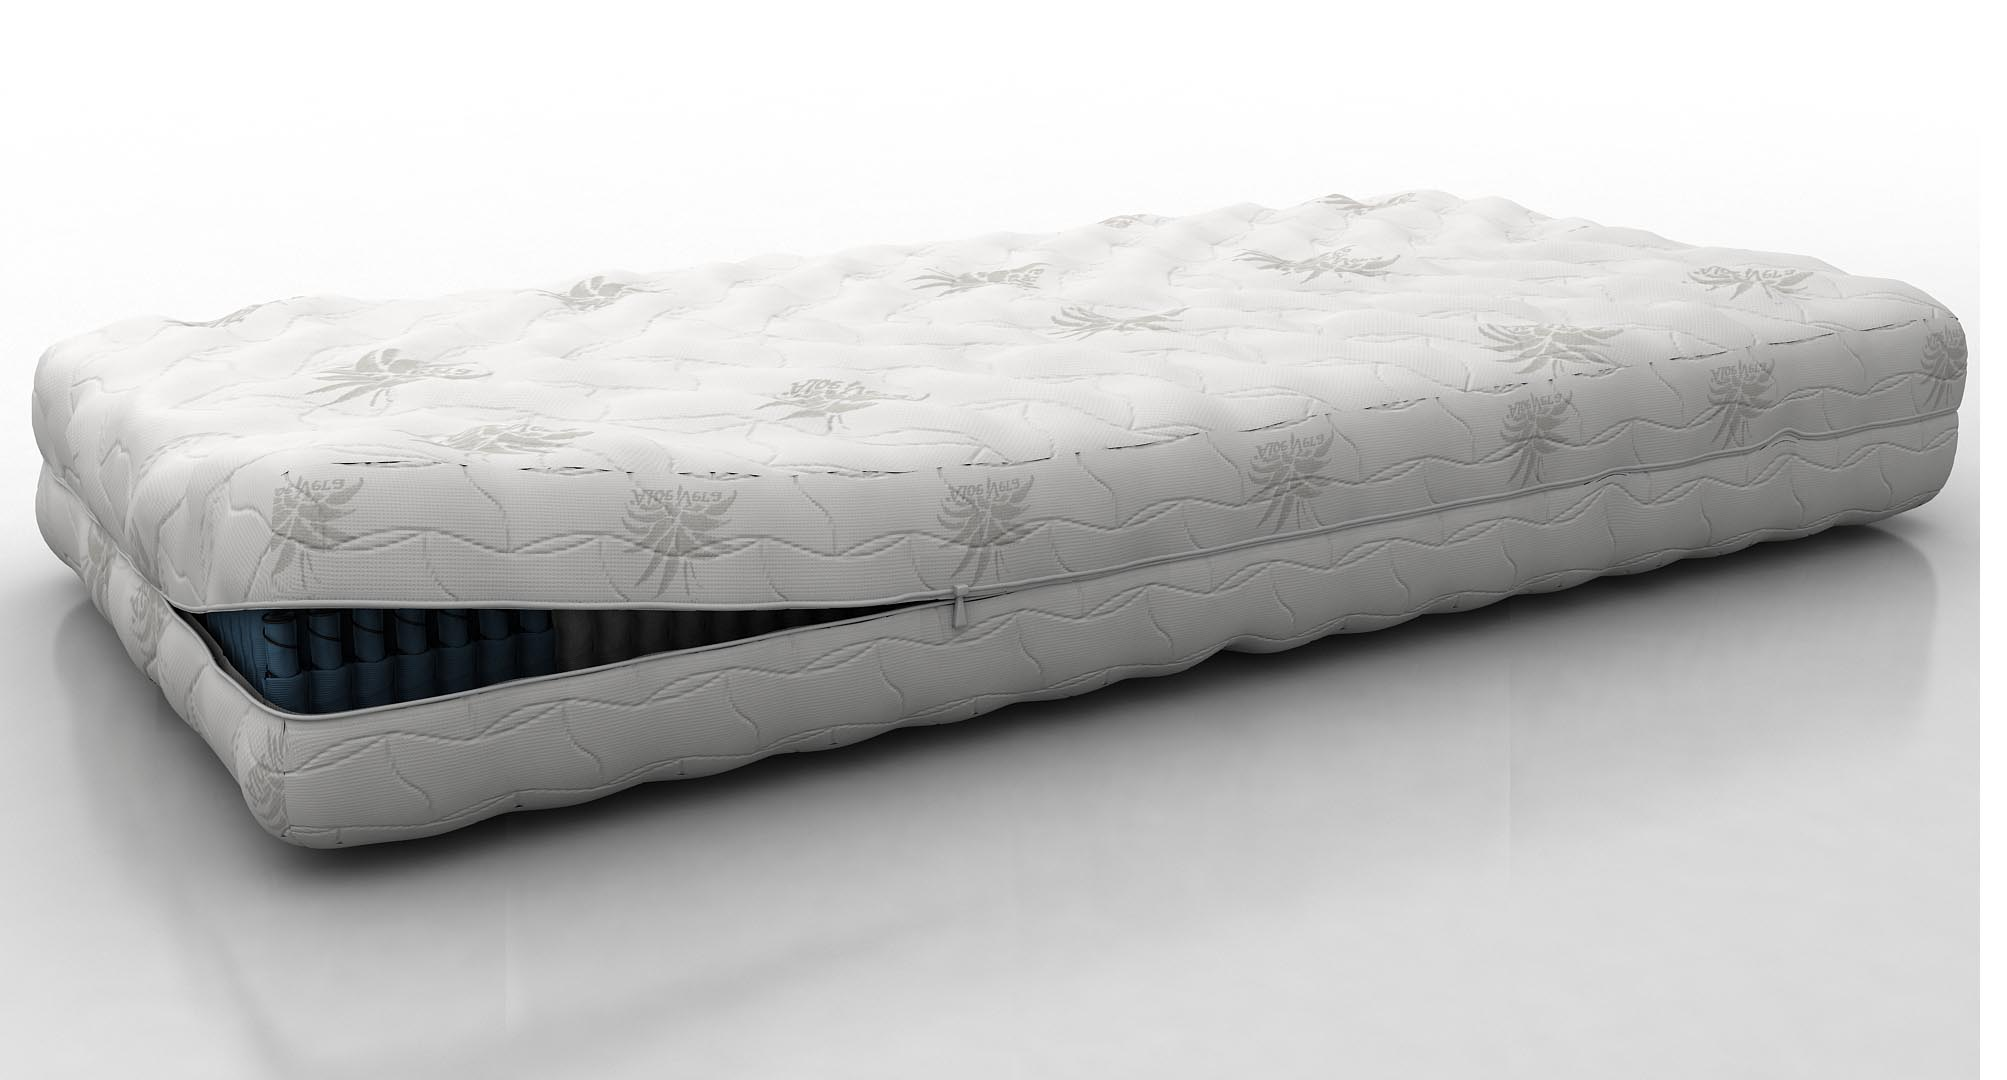 view online of mattress Ashbury